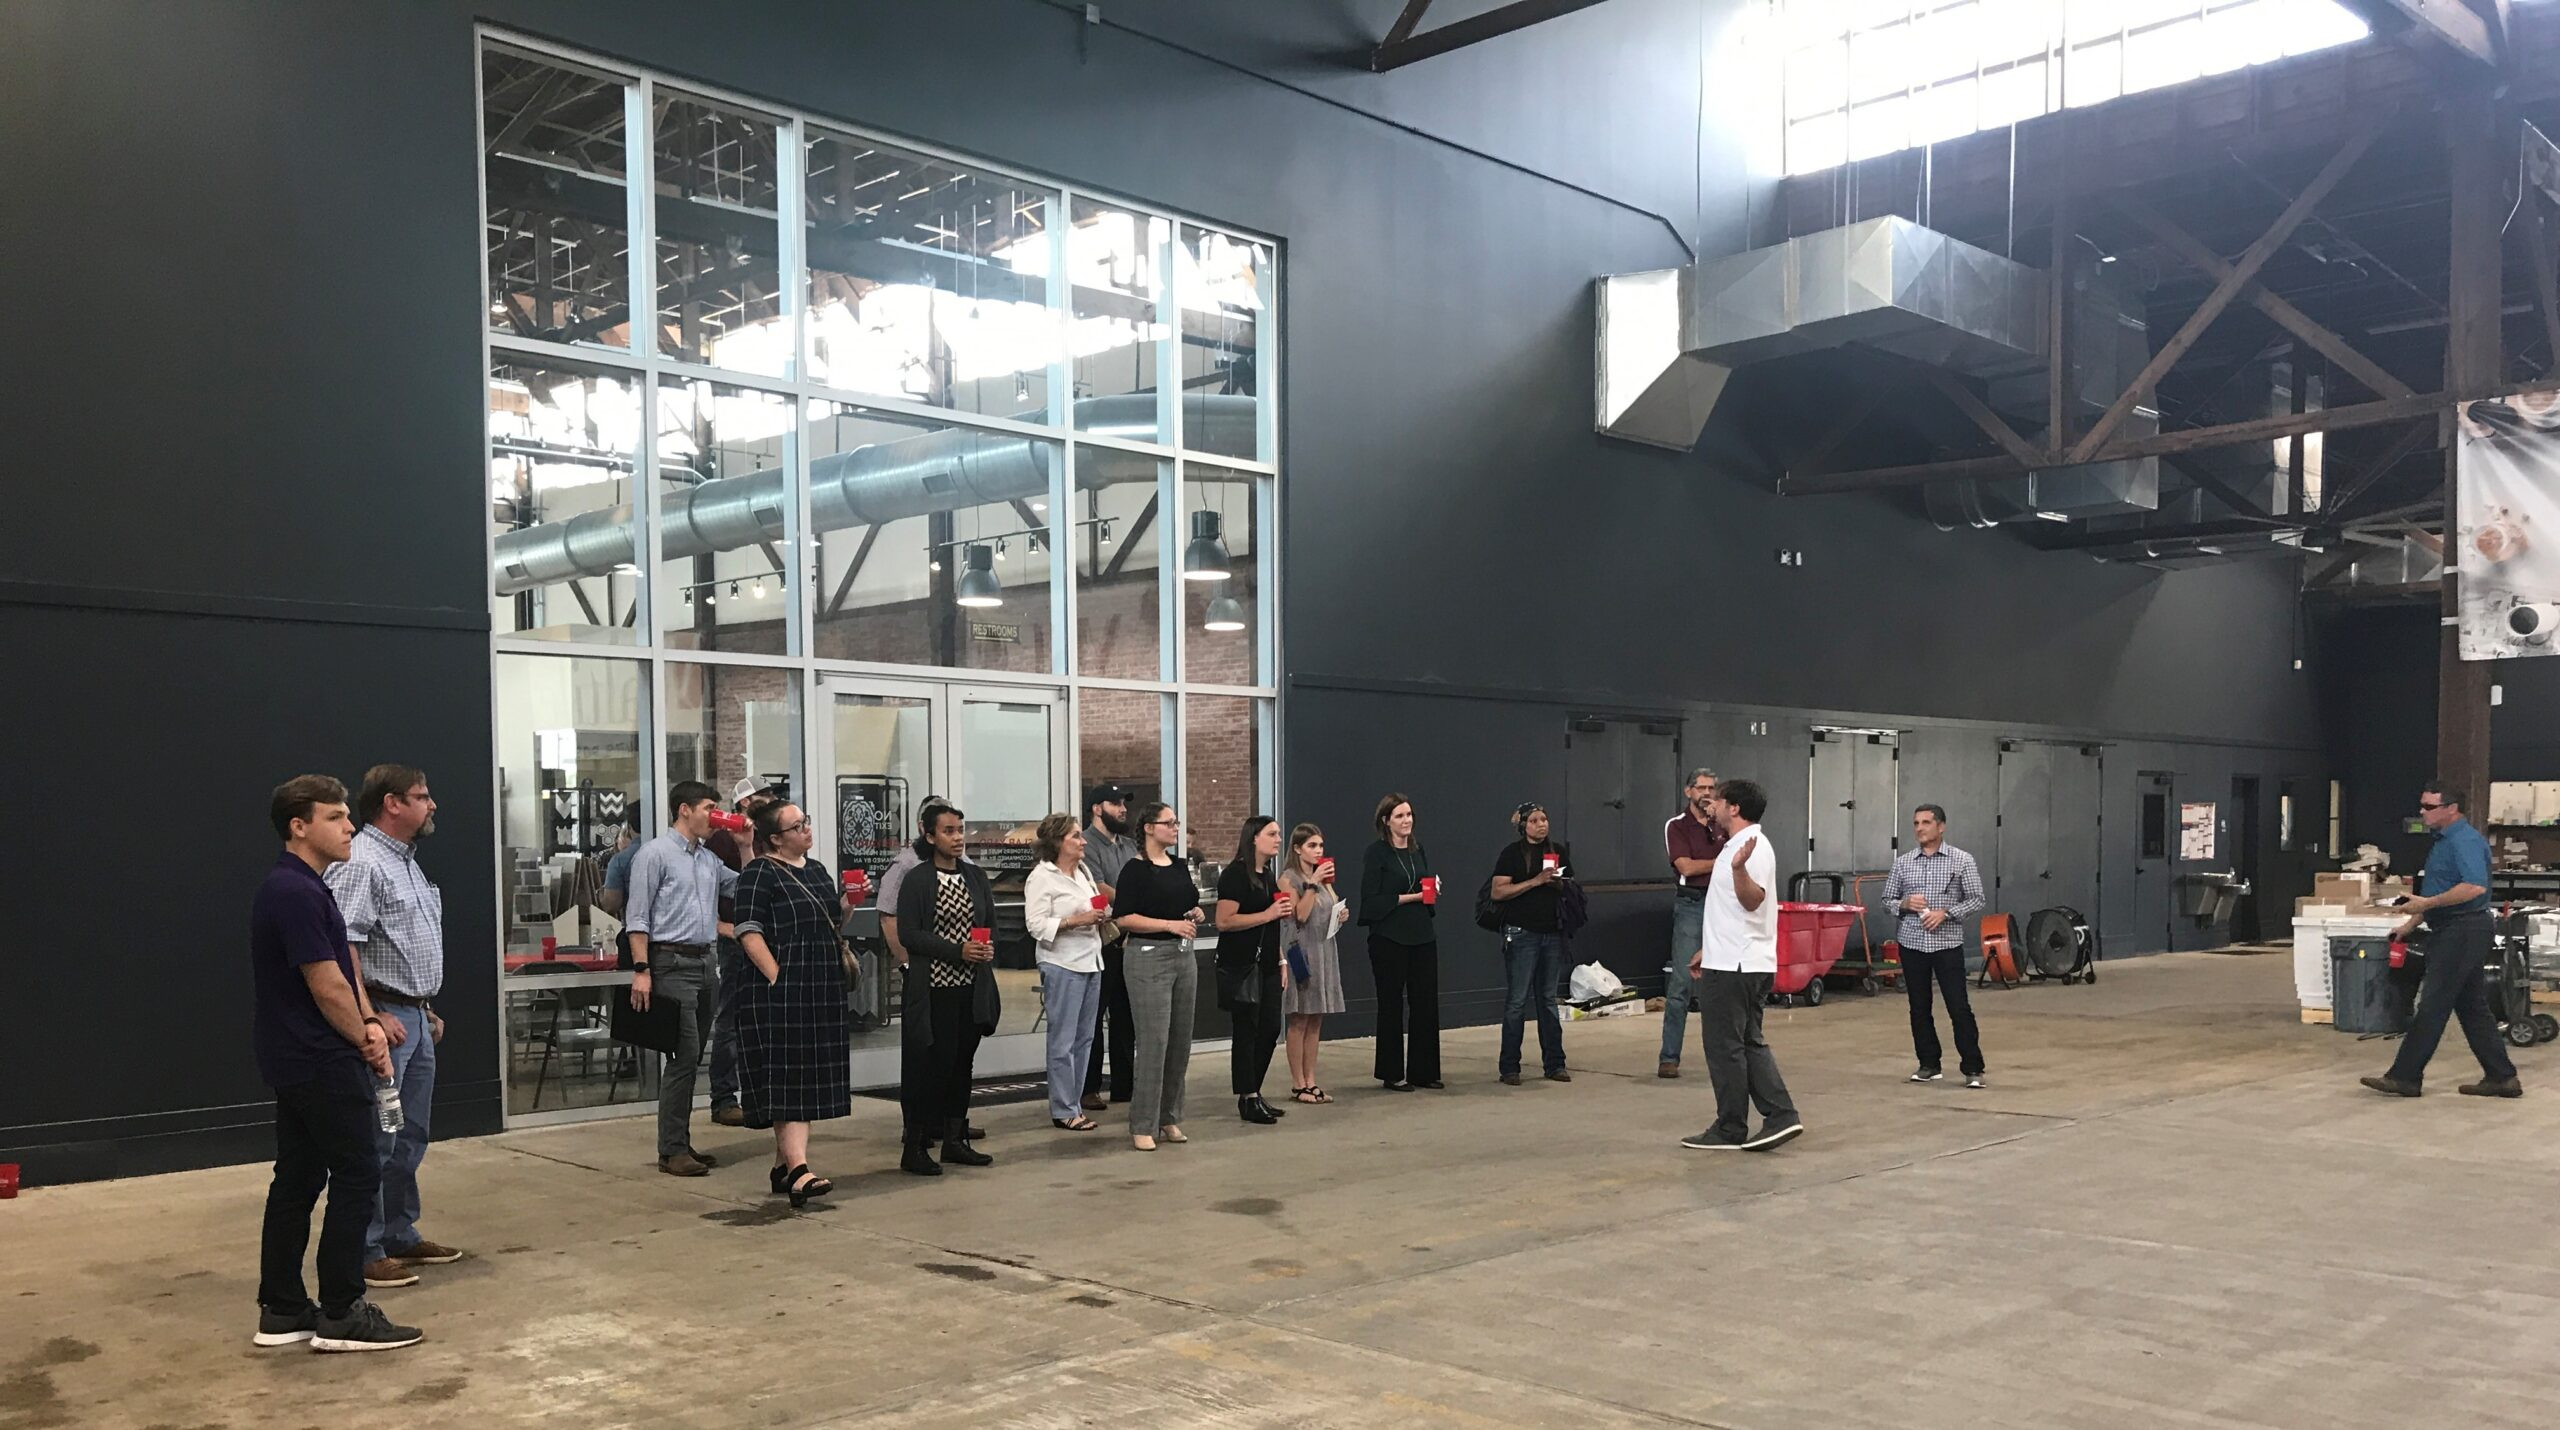 July Meeting at United Tile Company of Shreveport with Cambria Natural Quartz Surfaces, ASID South Central Chapter & AIA Shreveport